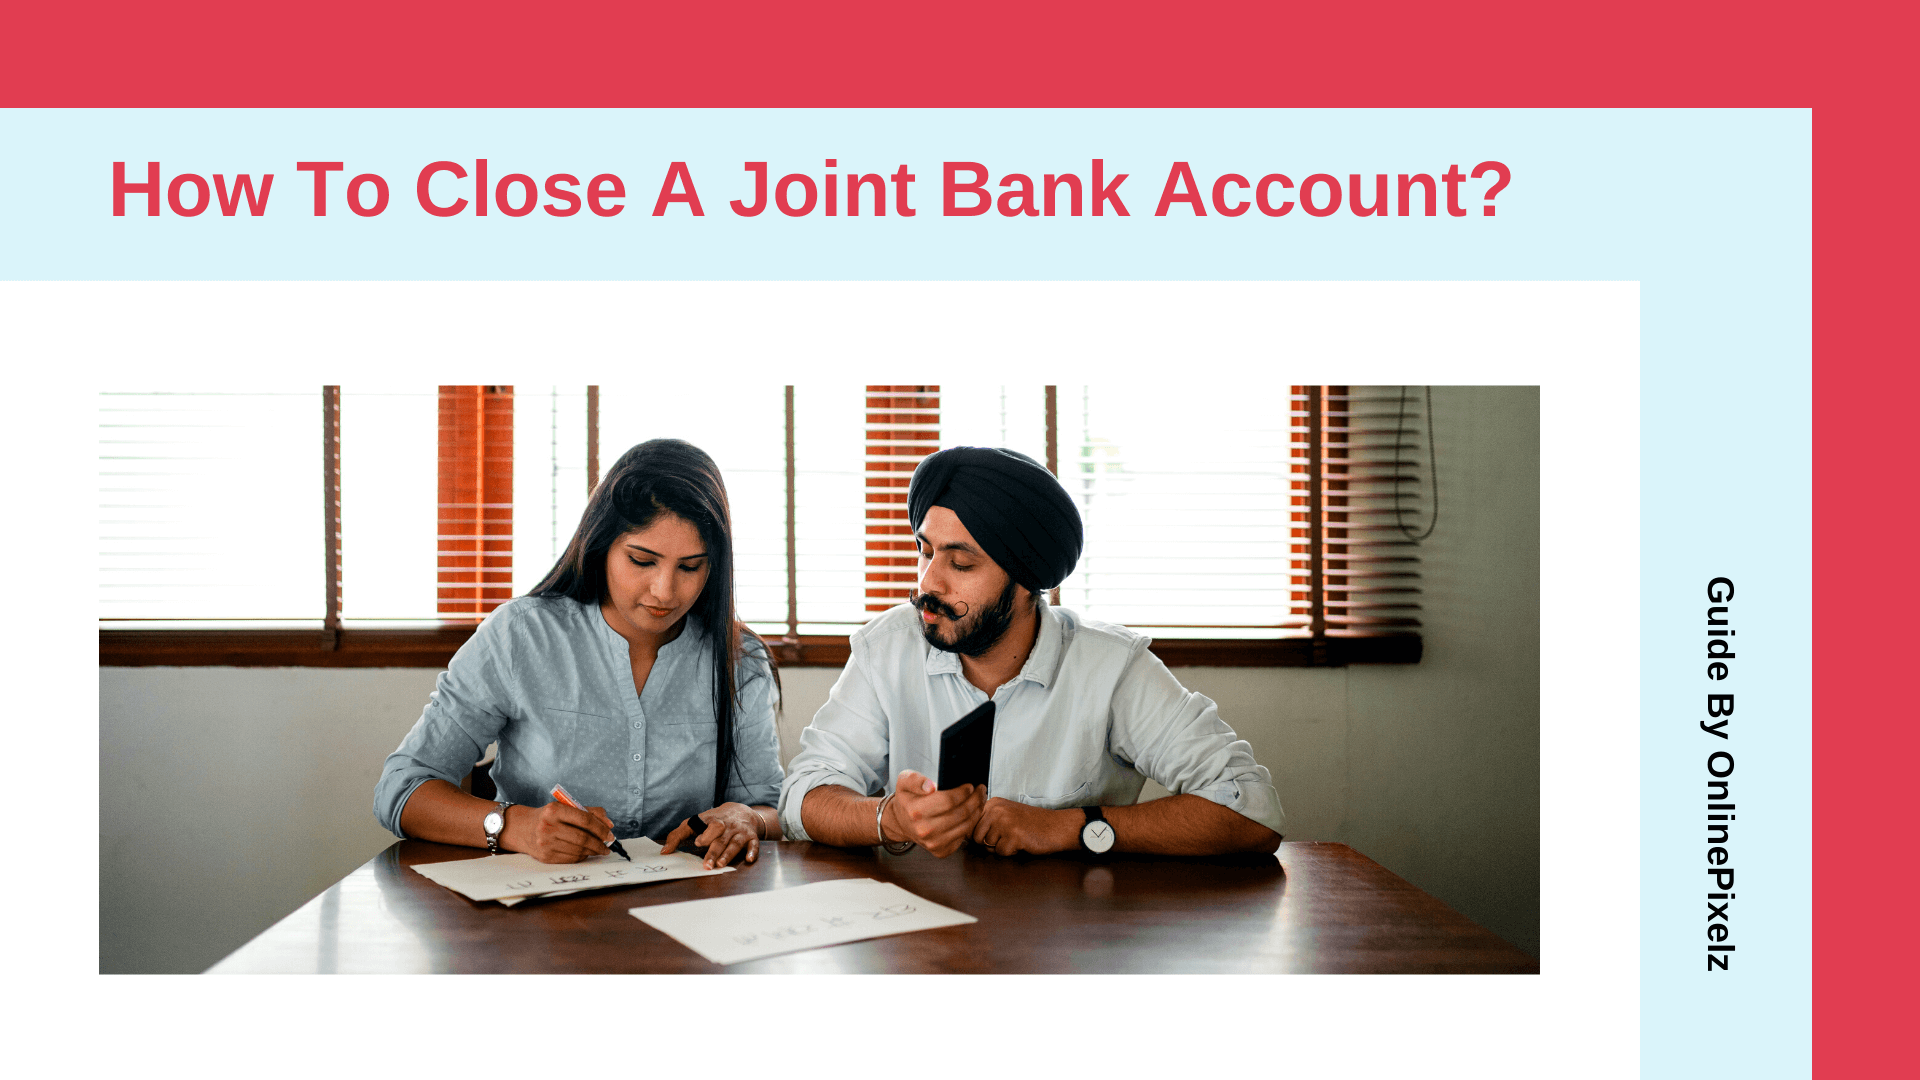 How To Close A Joint Bank Account